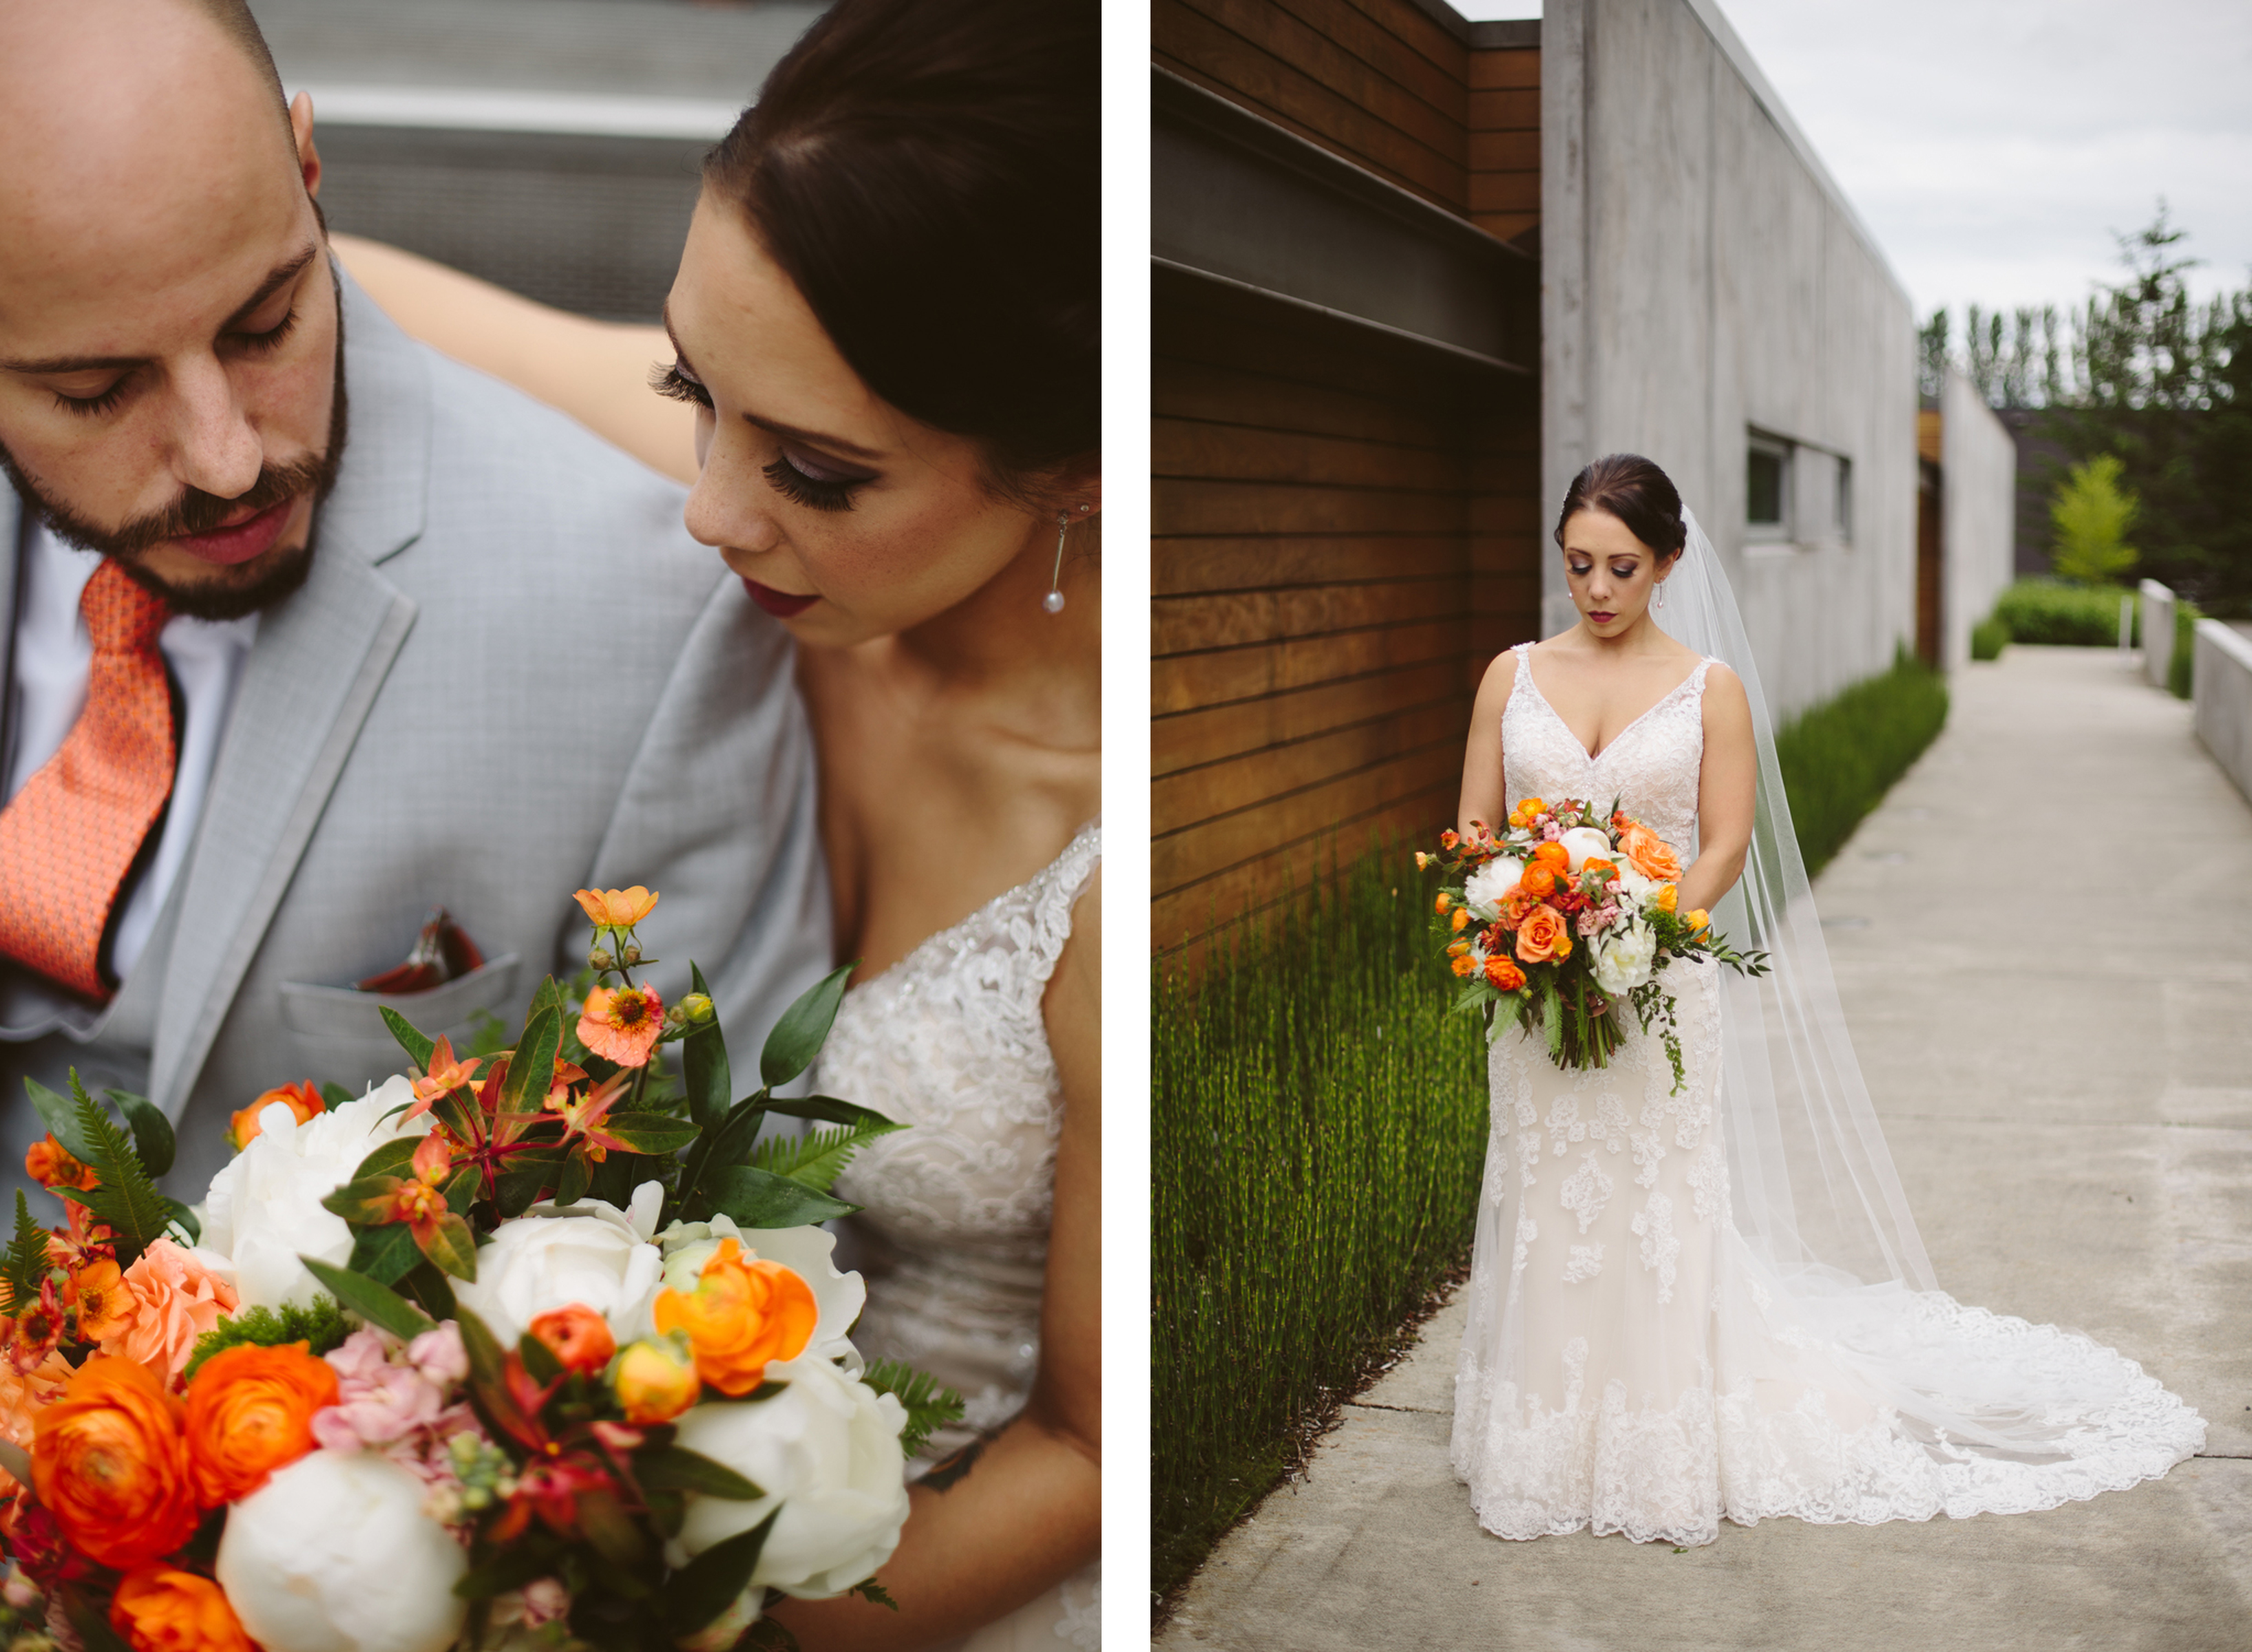 Photos by Seattle Wedding Planner